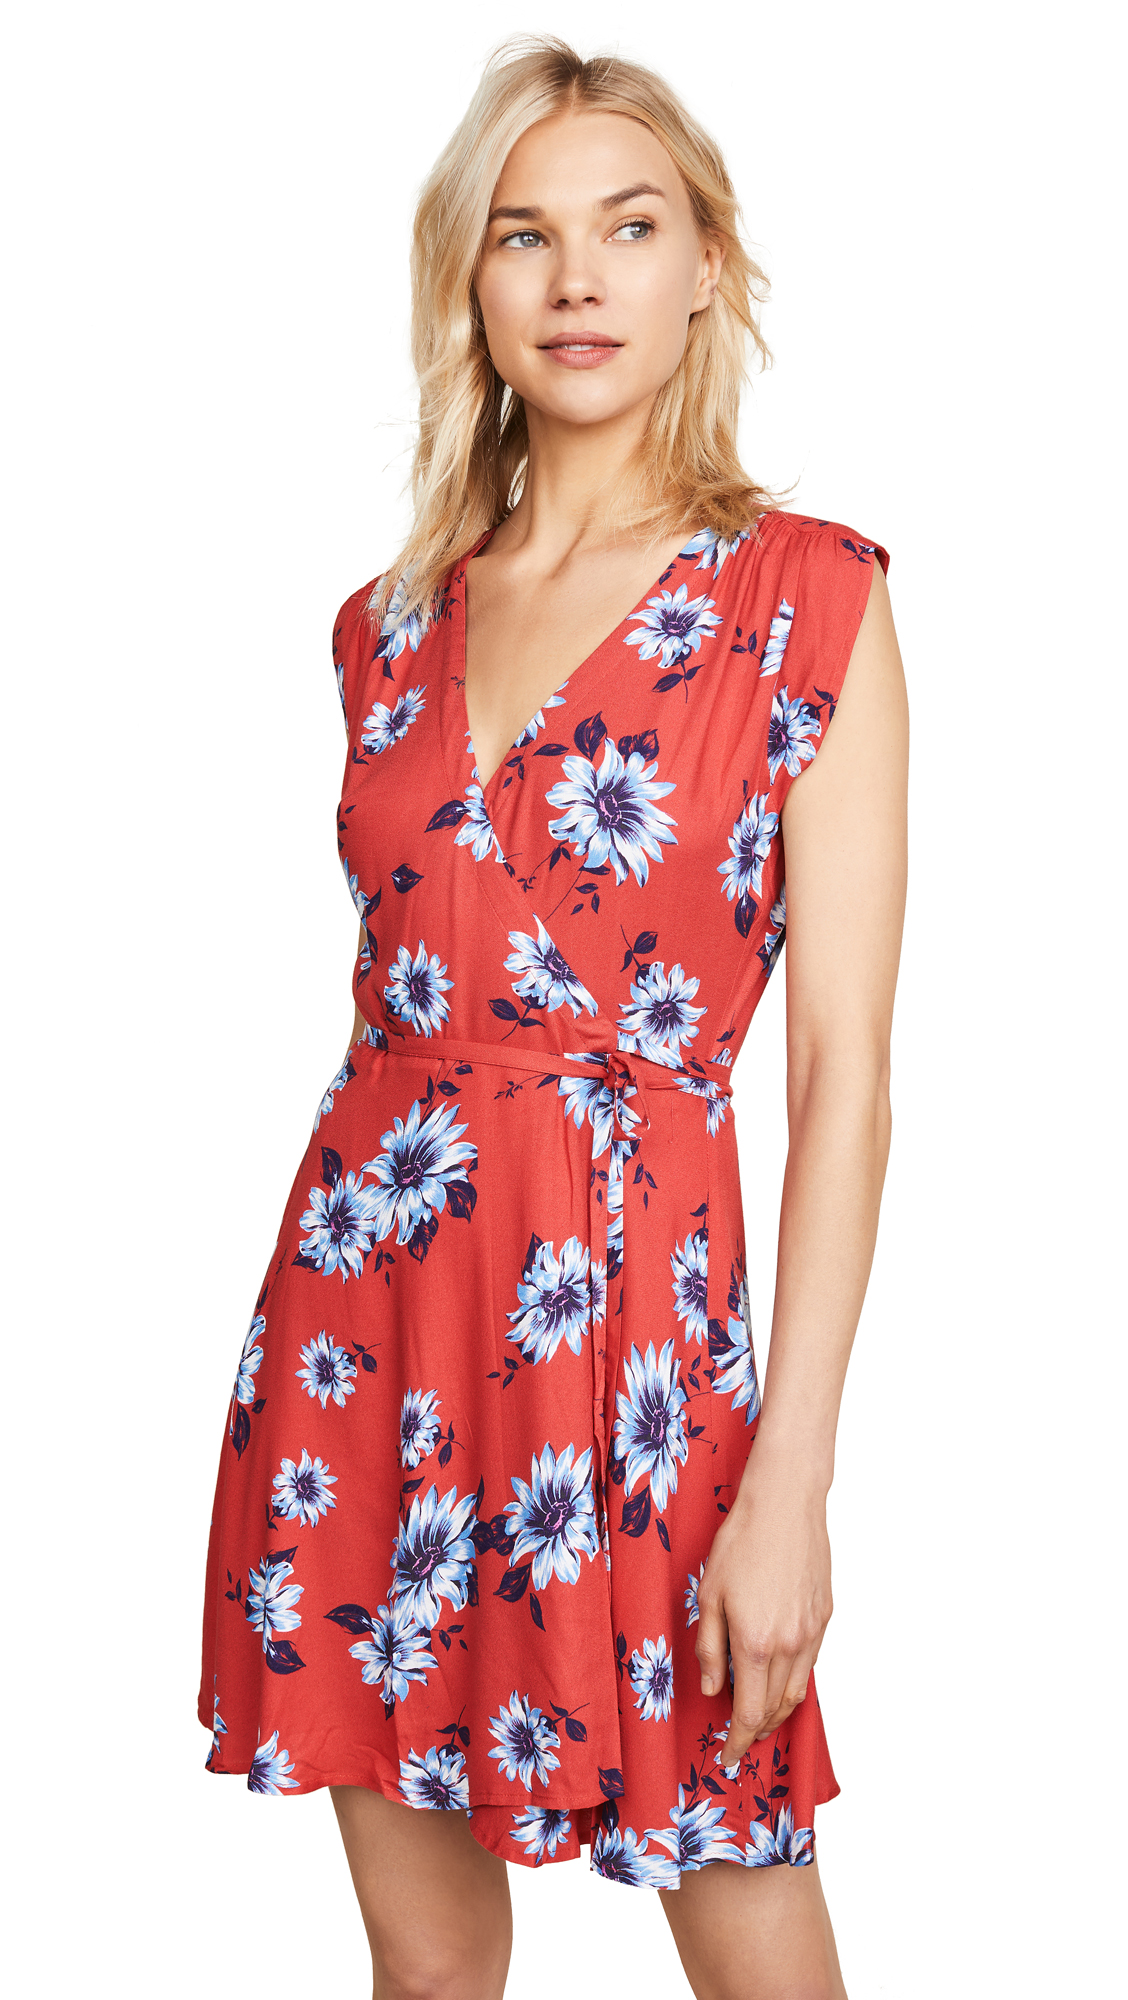 YUMI KIM Soho Mixer Dress in Finders Keepers Red